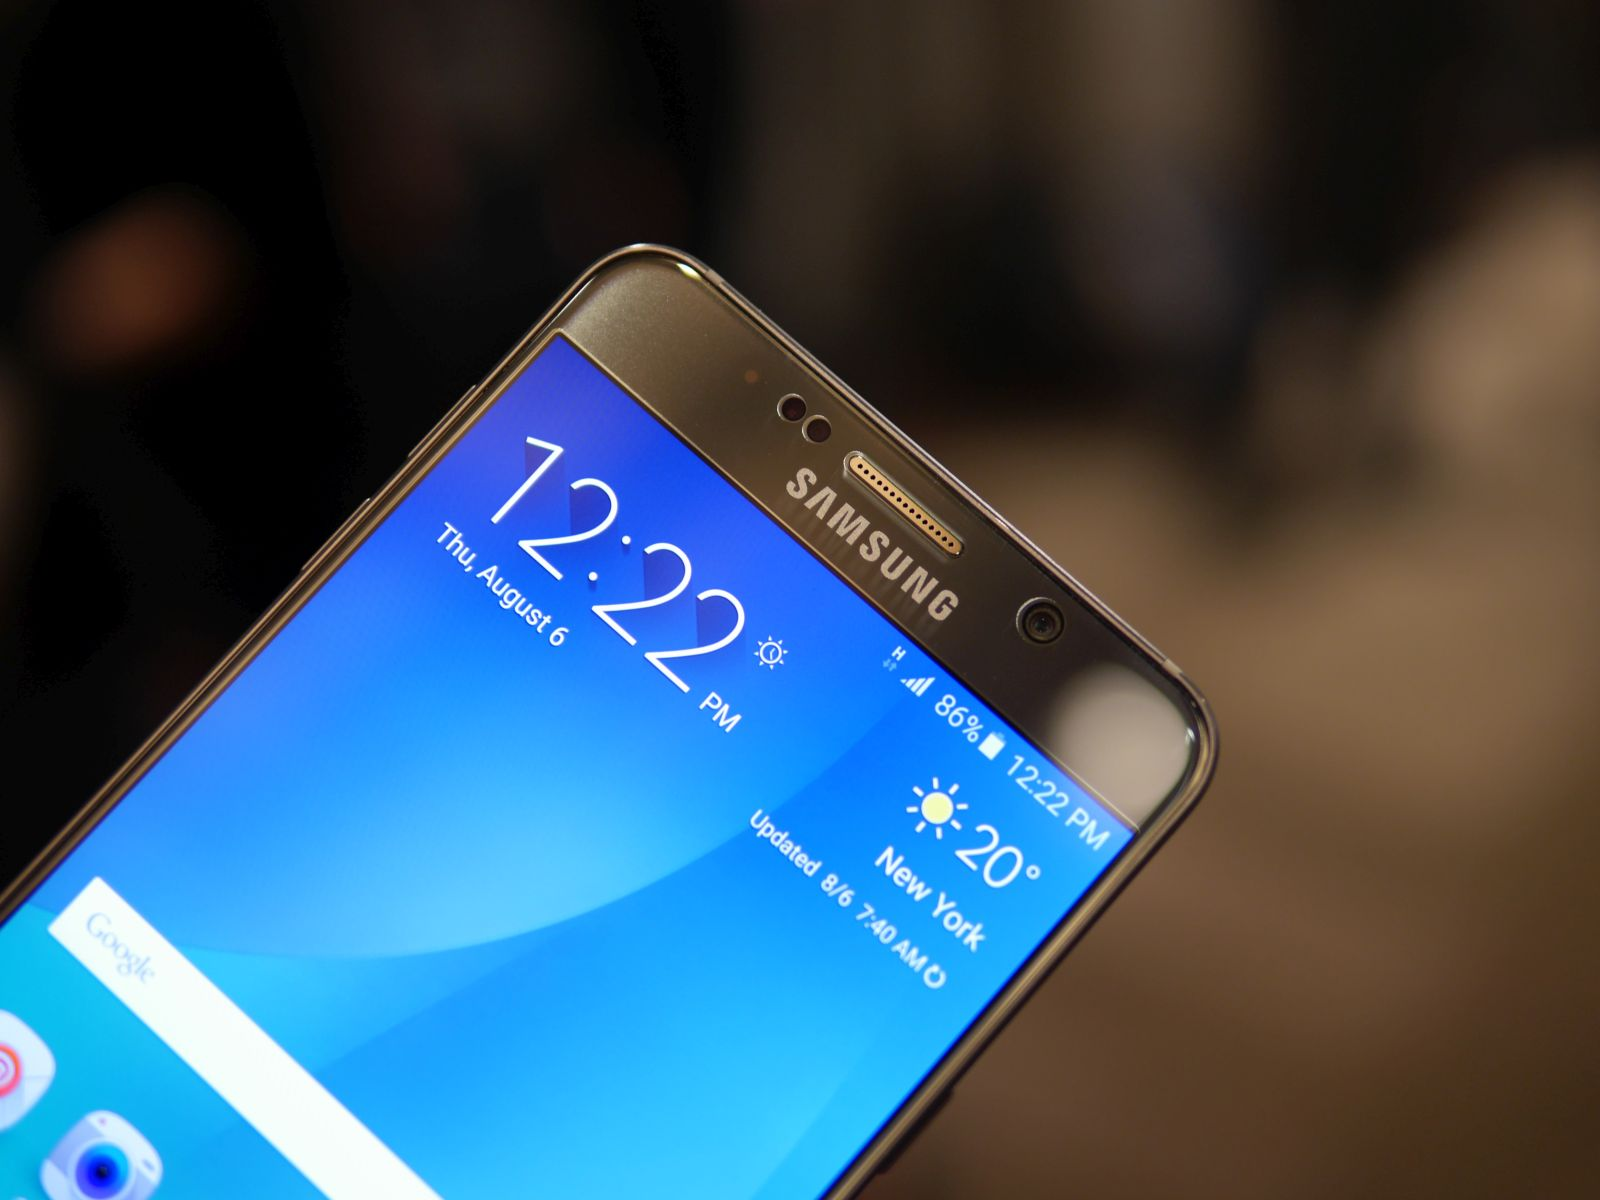 Samsung-Galaxy-Note5 (6)